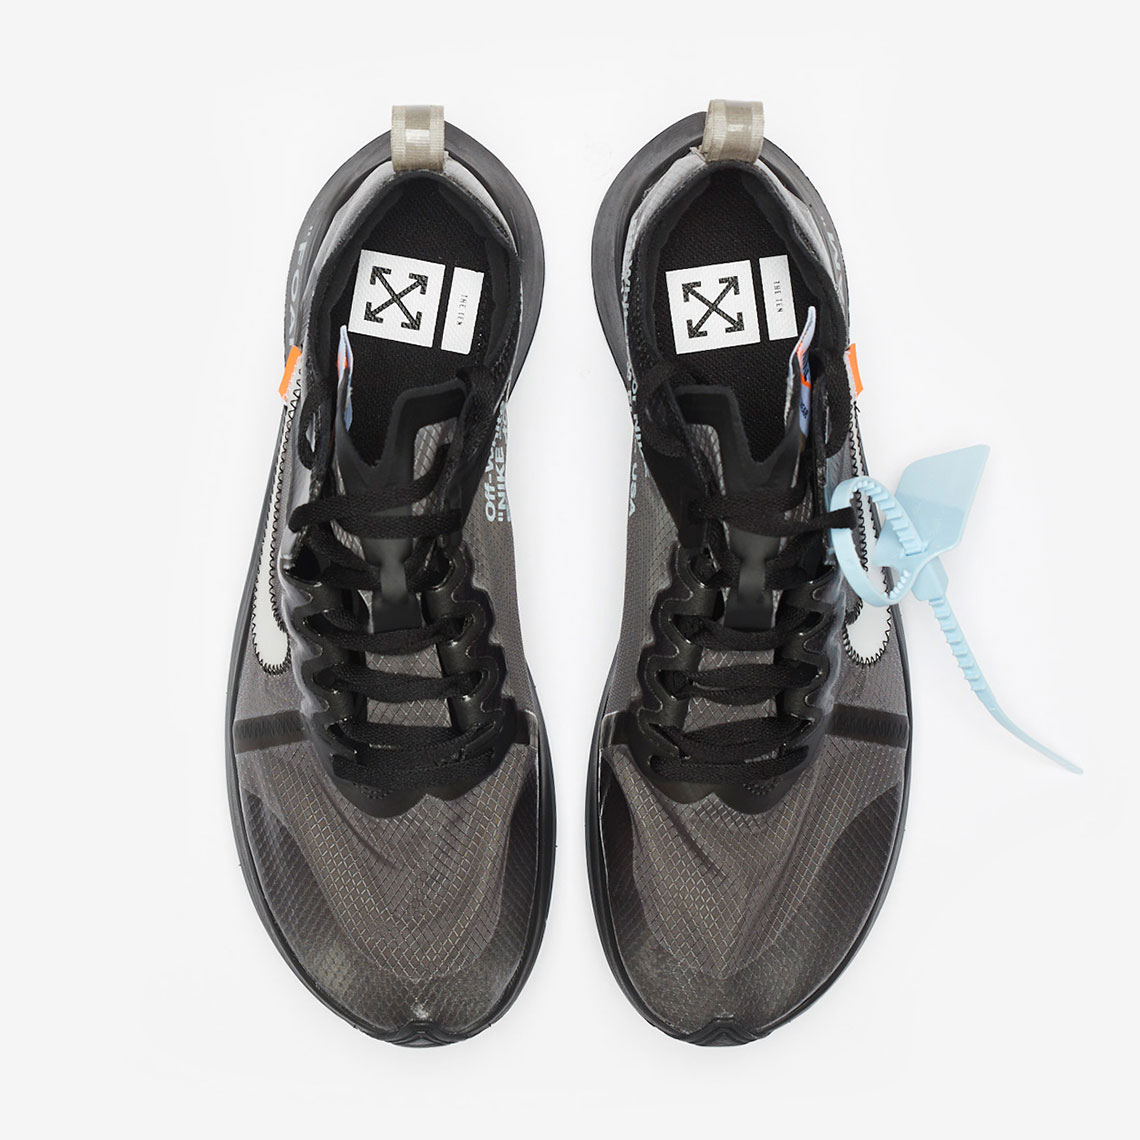 2d487e3227e4 Where To Buy Off White Nike Zoom Fly Black White Cone